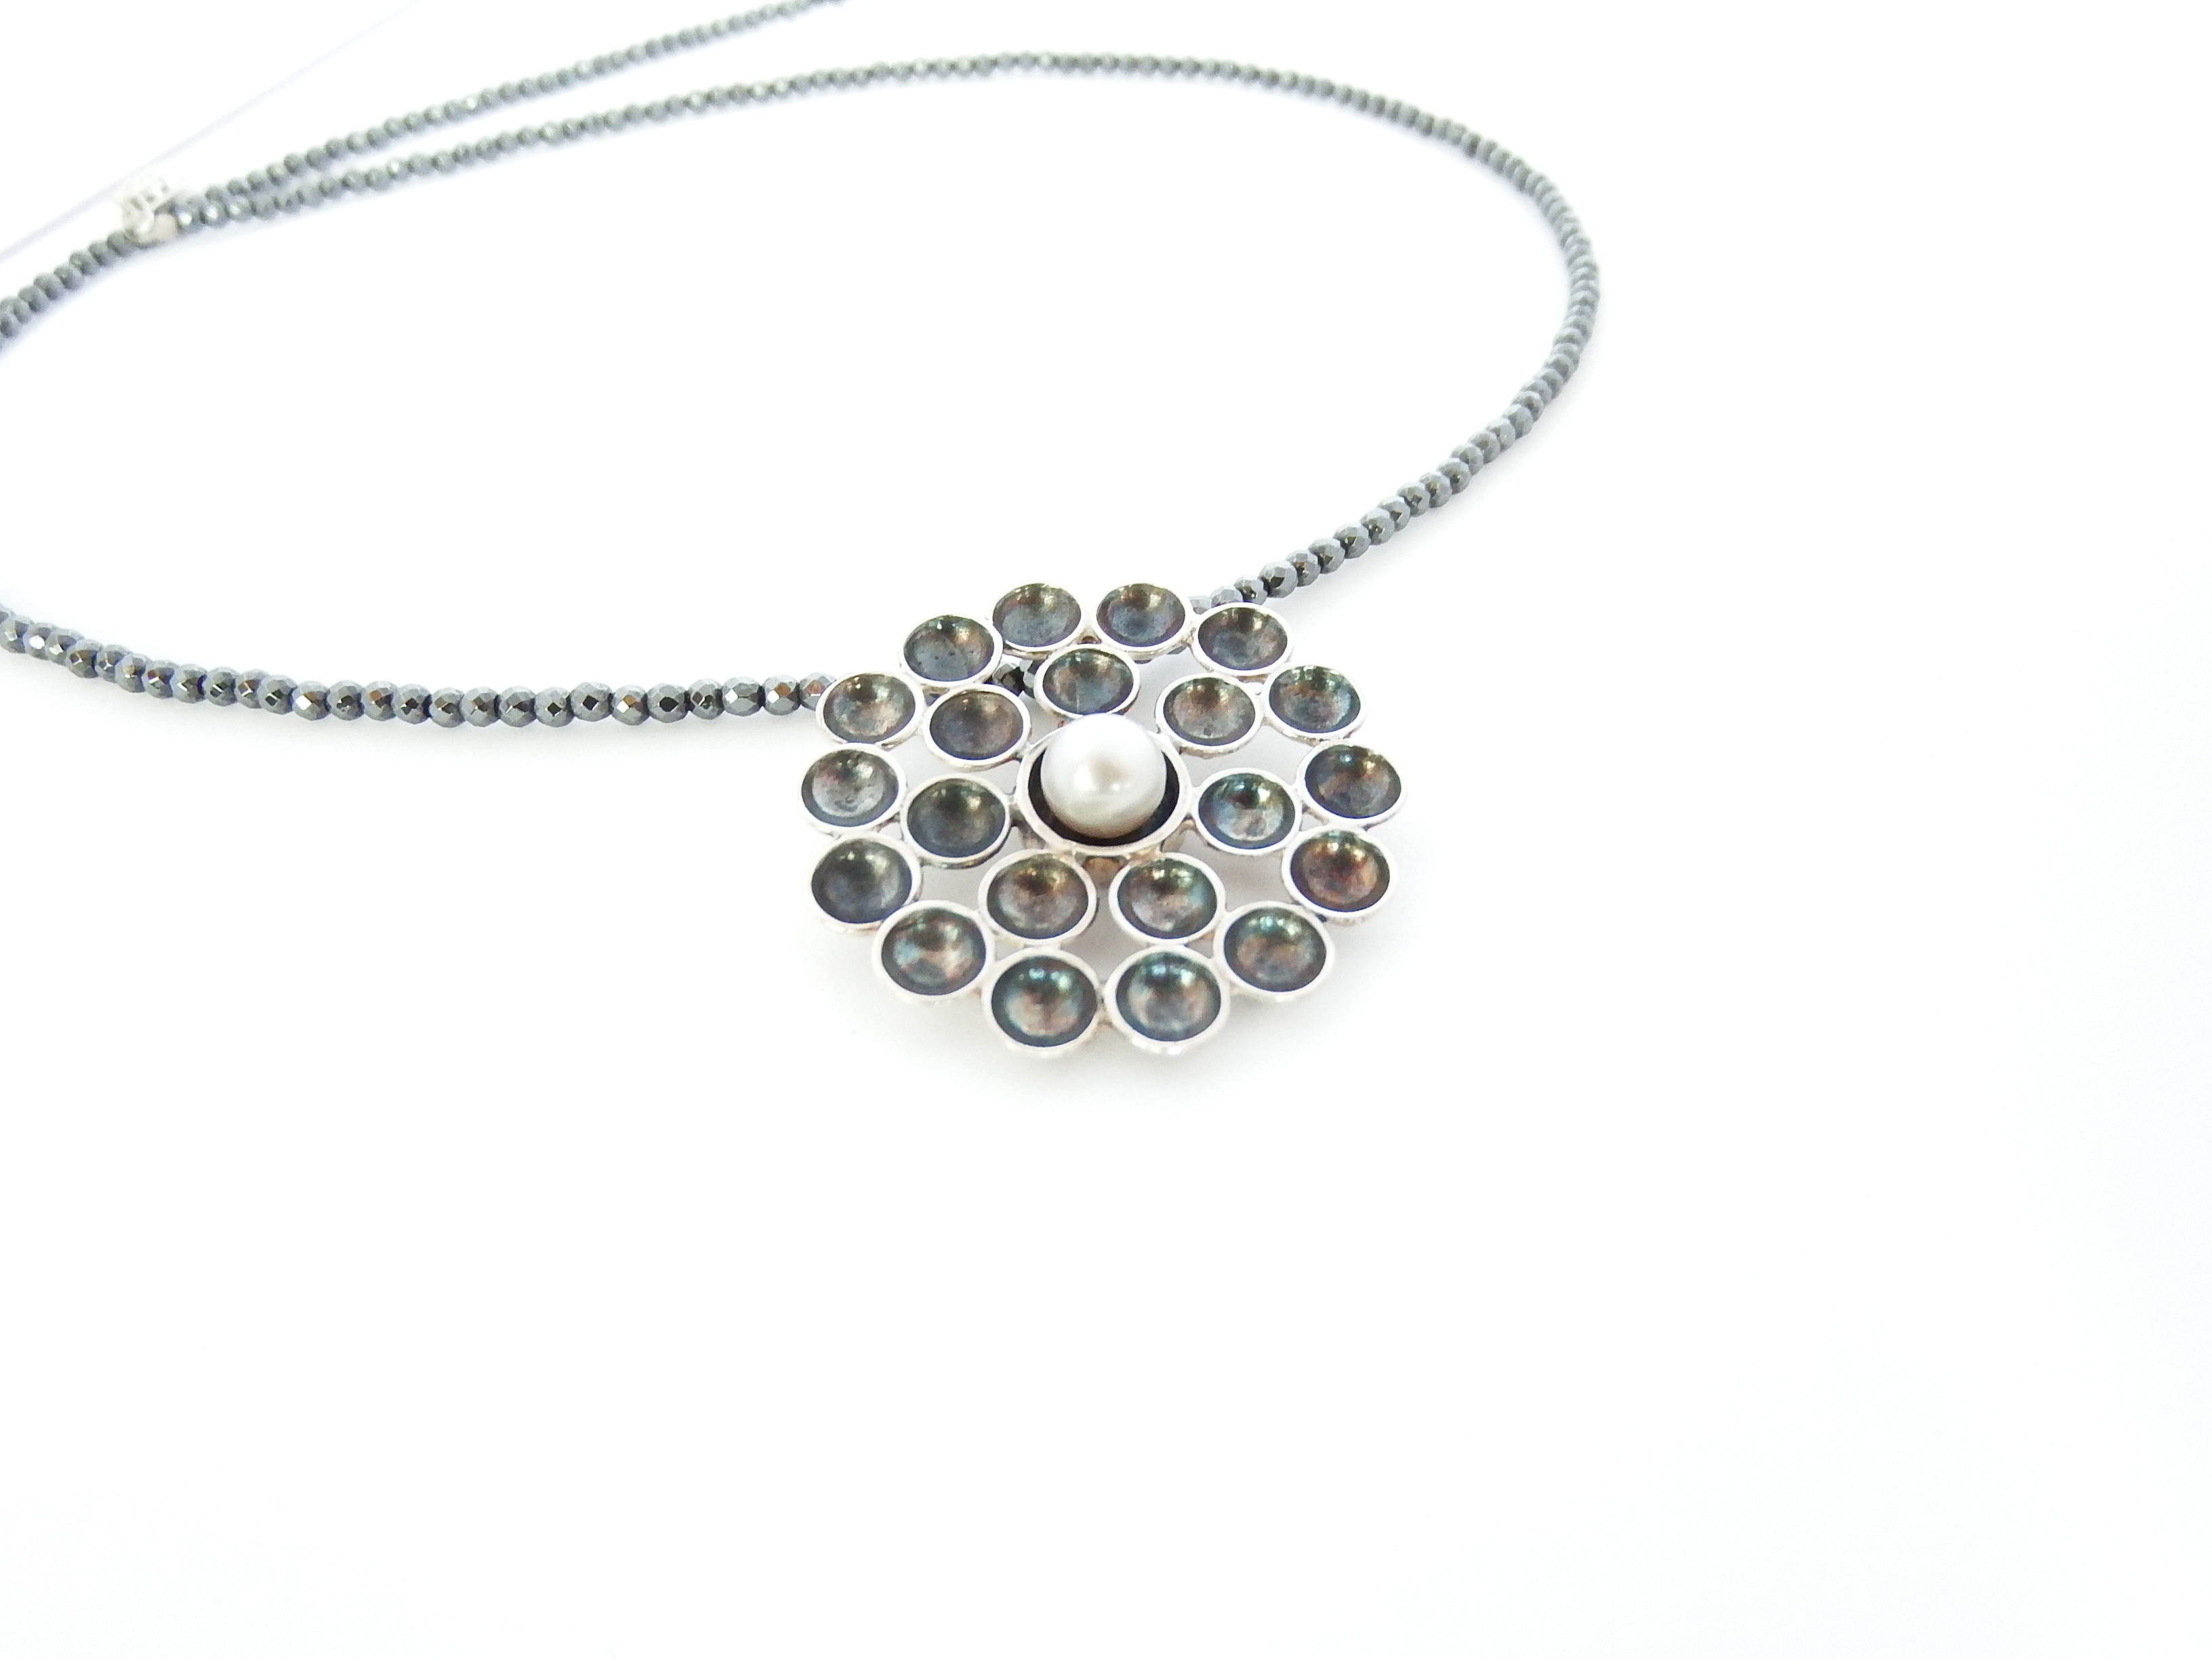 necklaces necklace enlarged tondo pendant sun bvlgari the realreal jewelry products